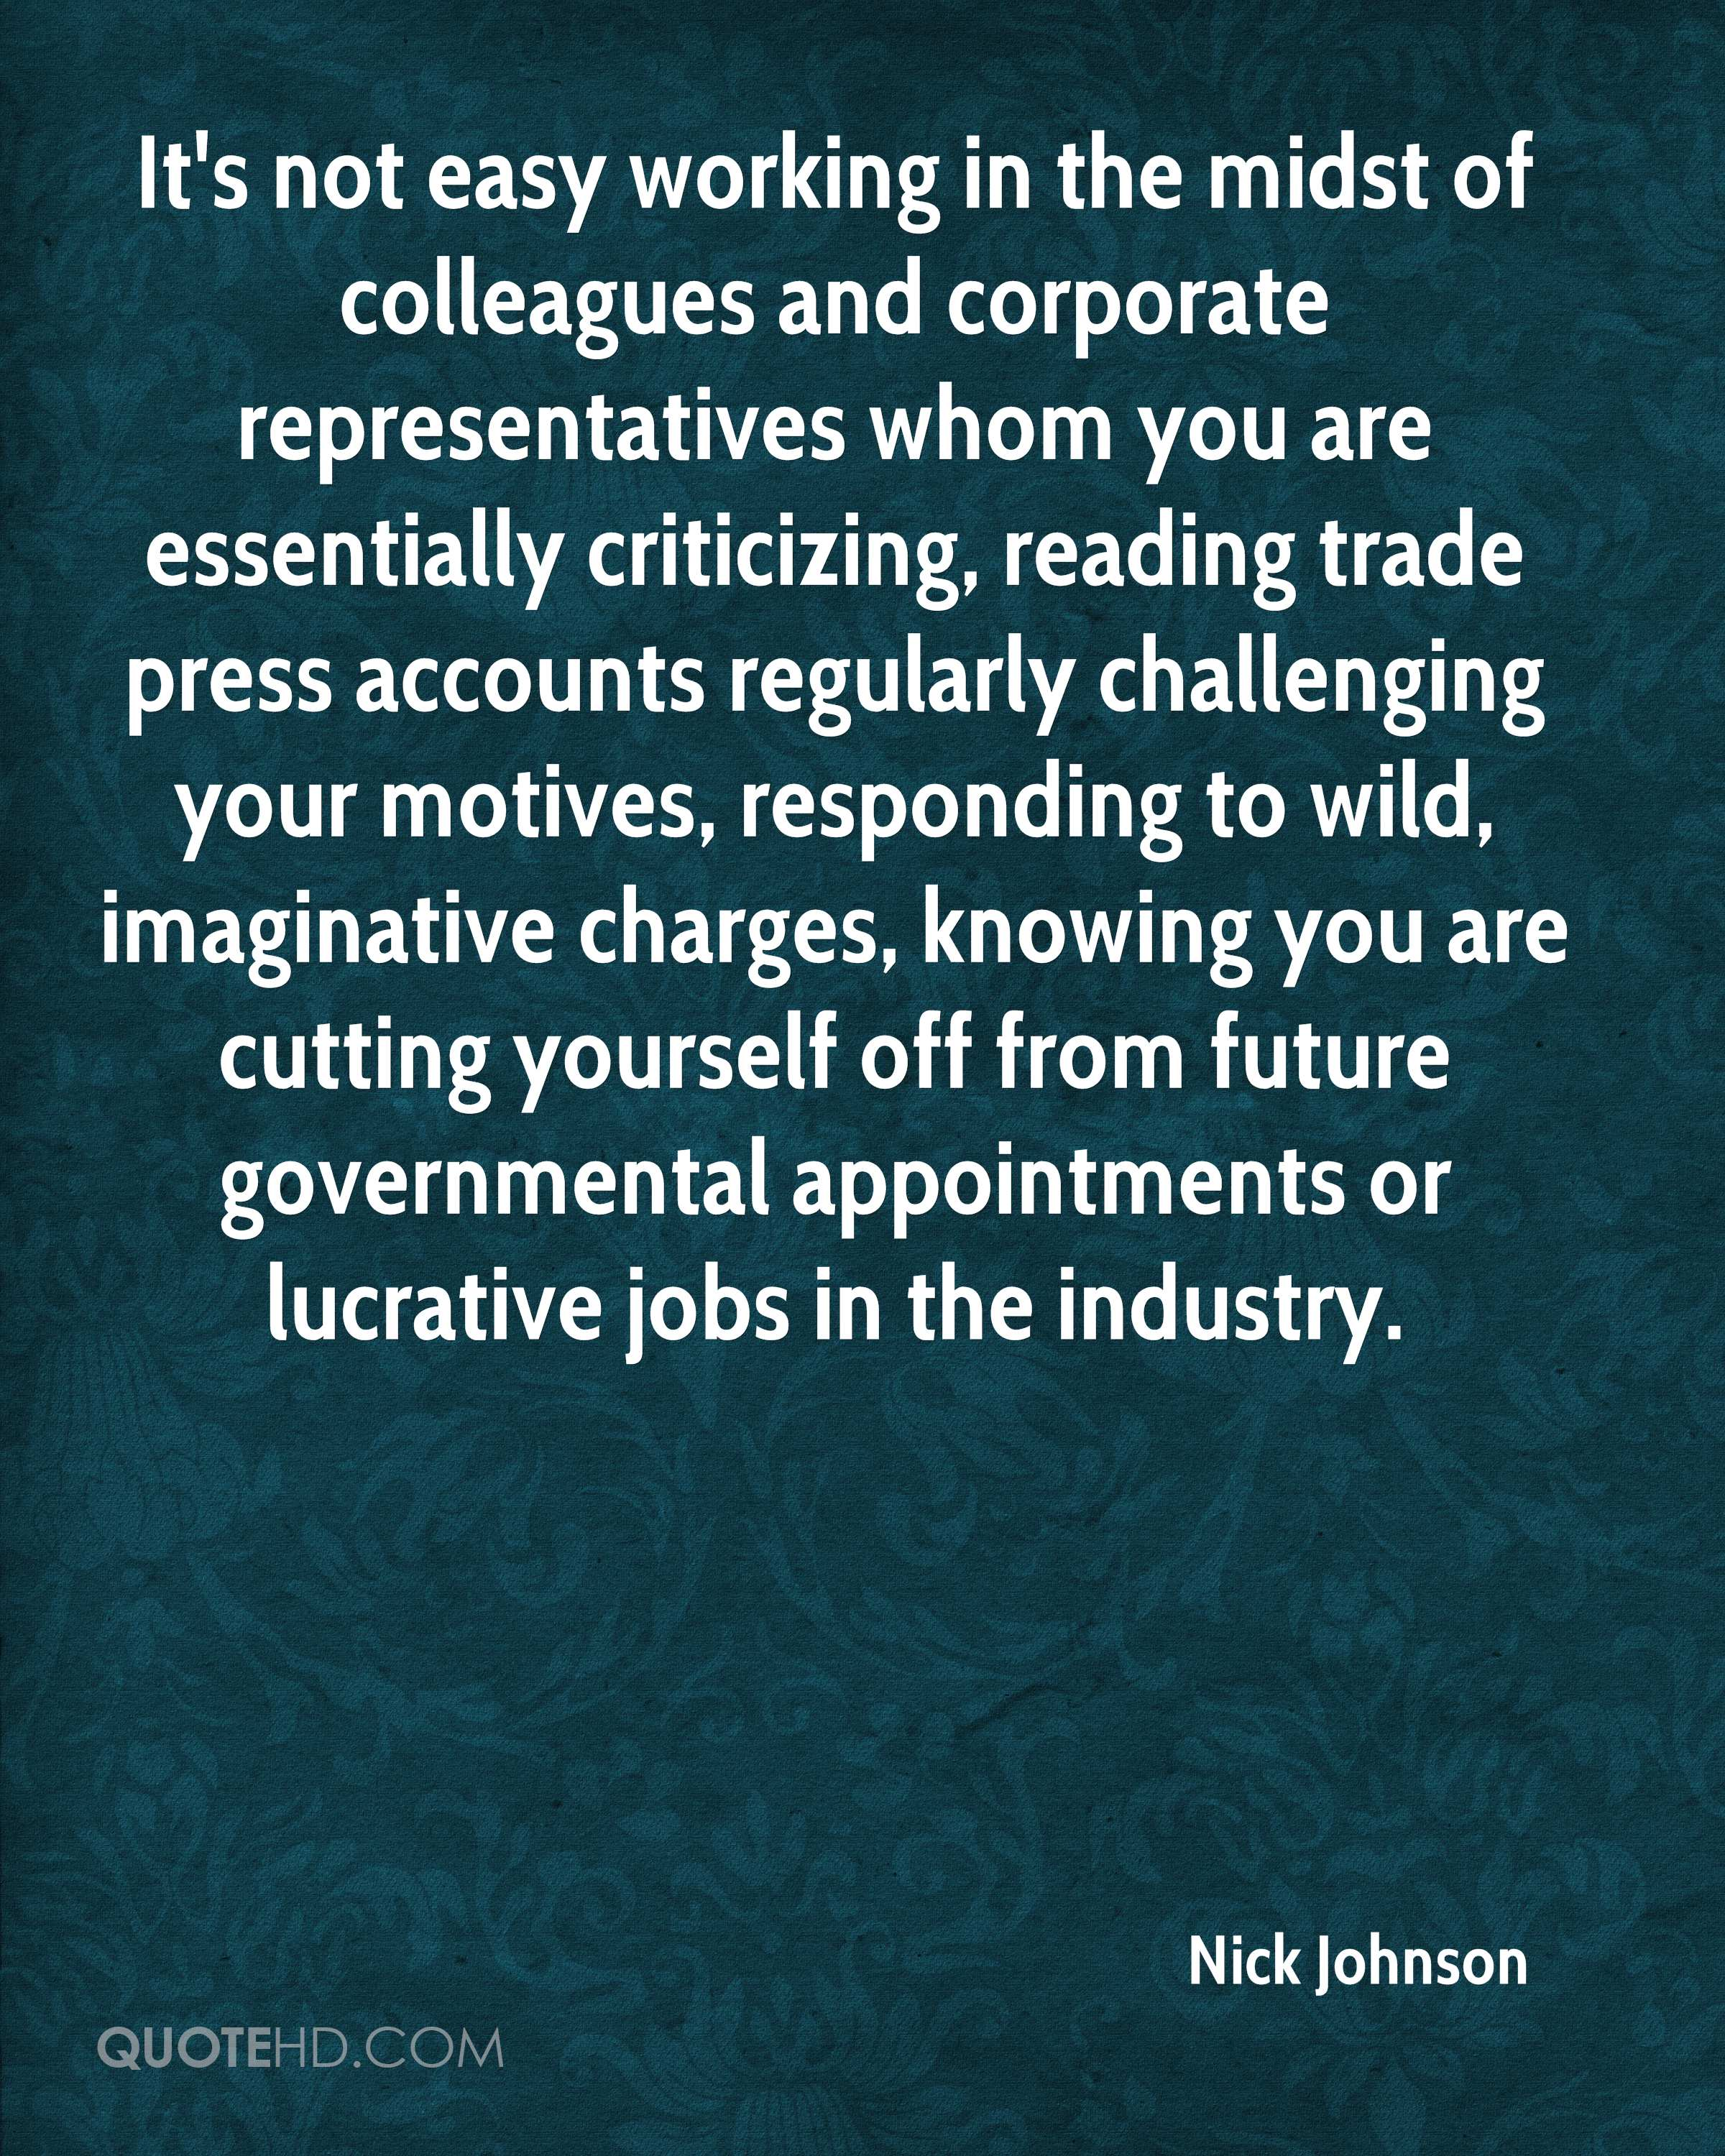 It's not easy working in the midst of colleagues and corporate representatives whom you are essentially criticizing, reading trade press accounts regularly challenging your motives, responding to wild, imaginative charges, knowing you are cutting yourself off from future governmental appointments or lucrative jobs in the industry.